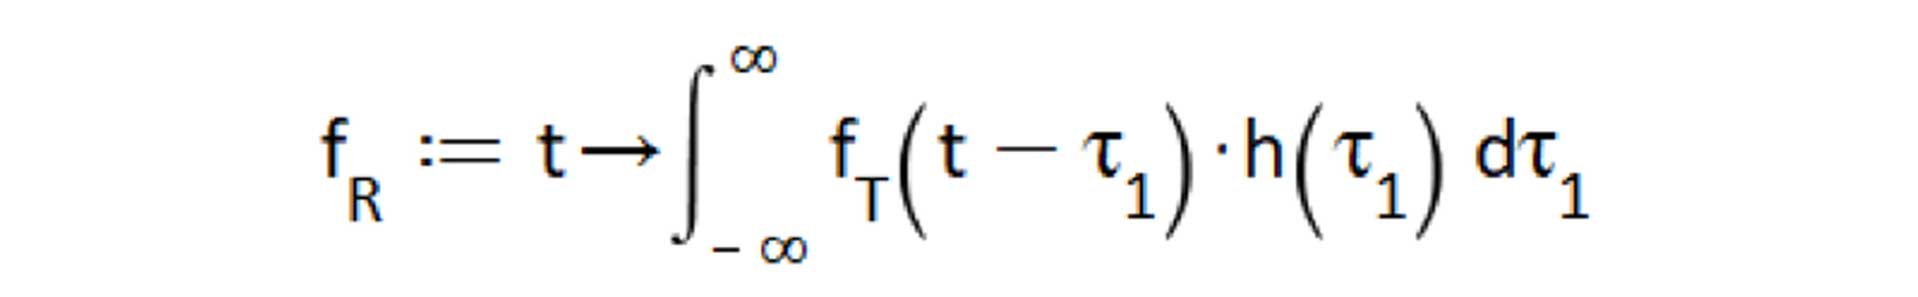 Live equation in natural math notation.